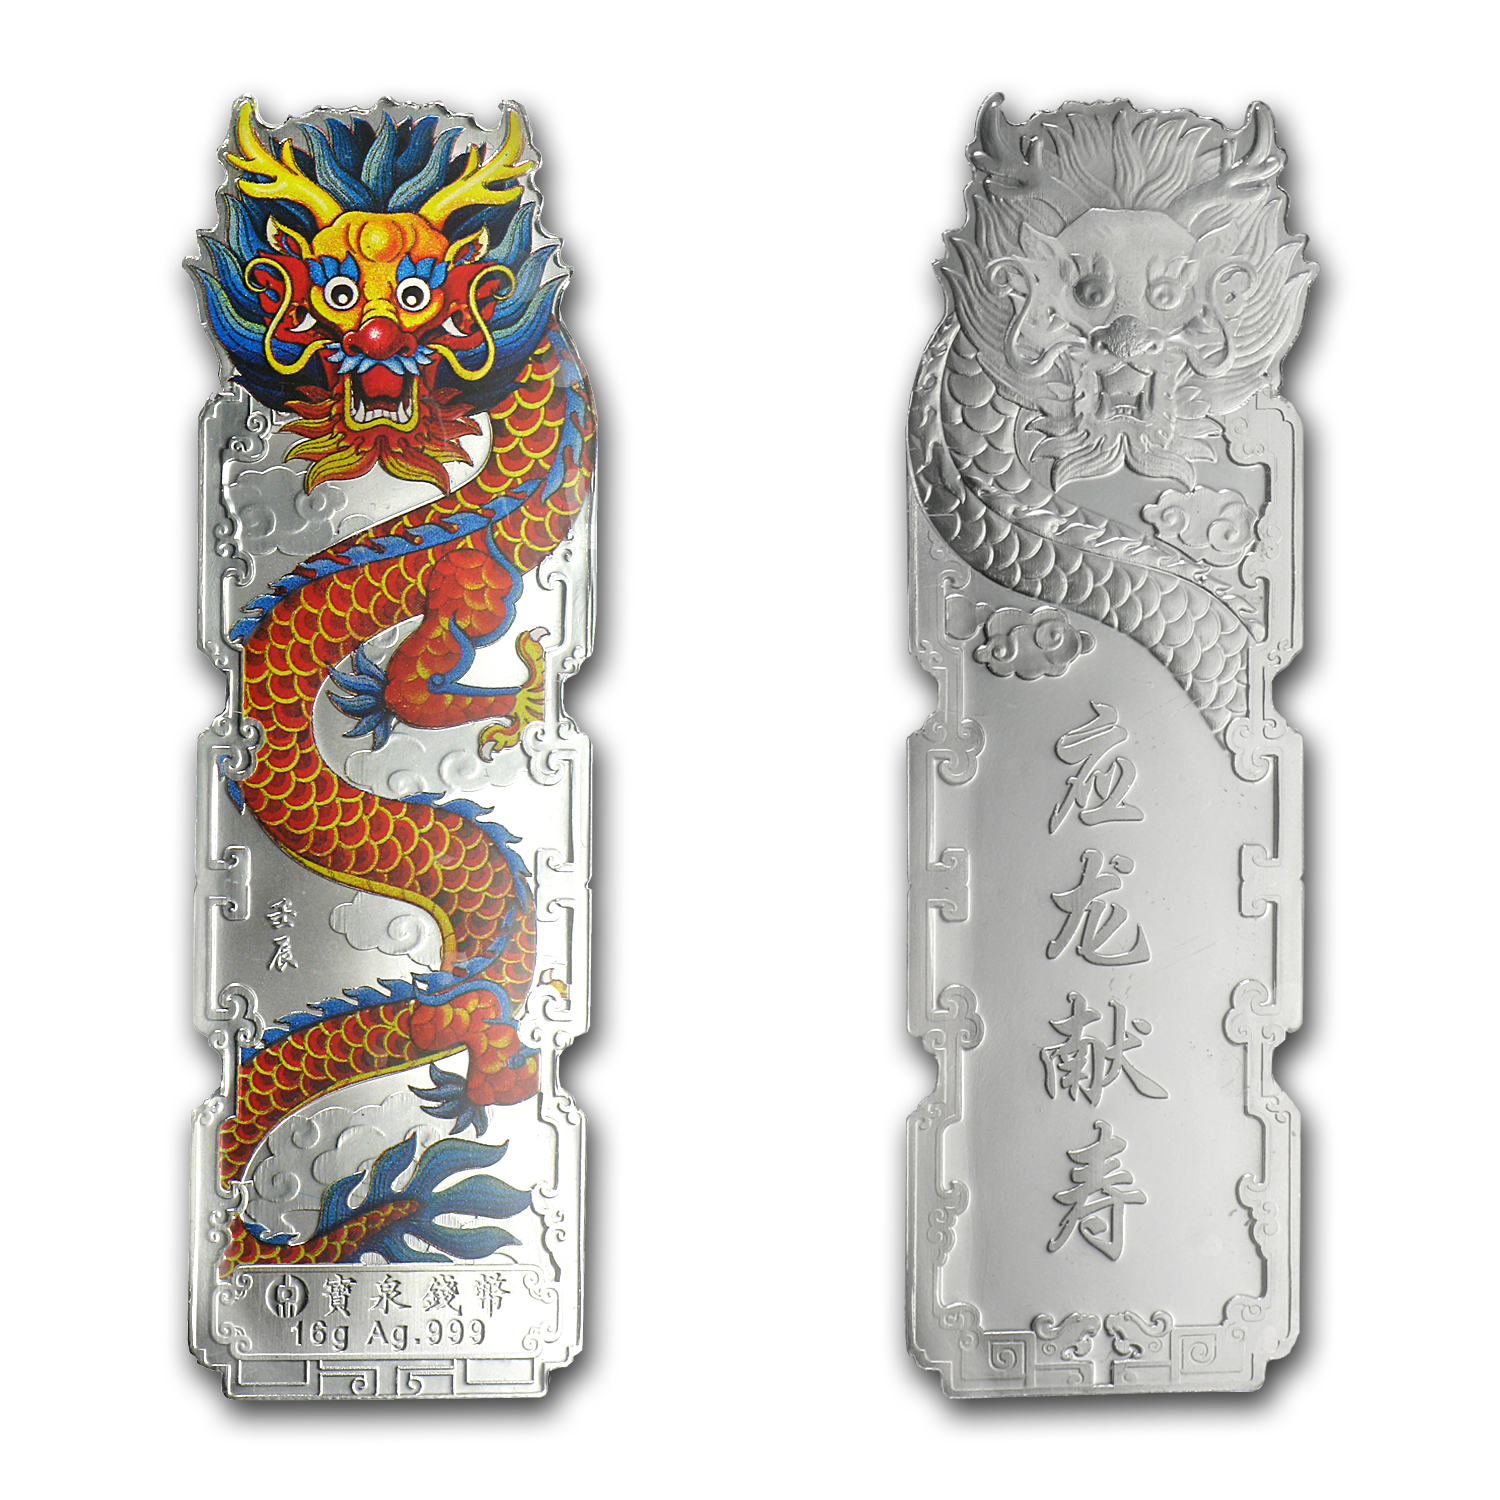 16 gram Silver Bars - Year of the Dragon (2012/Colorized/5 pc.)